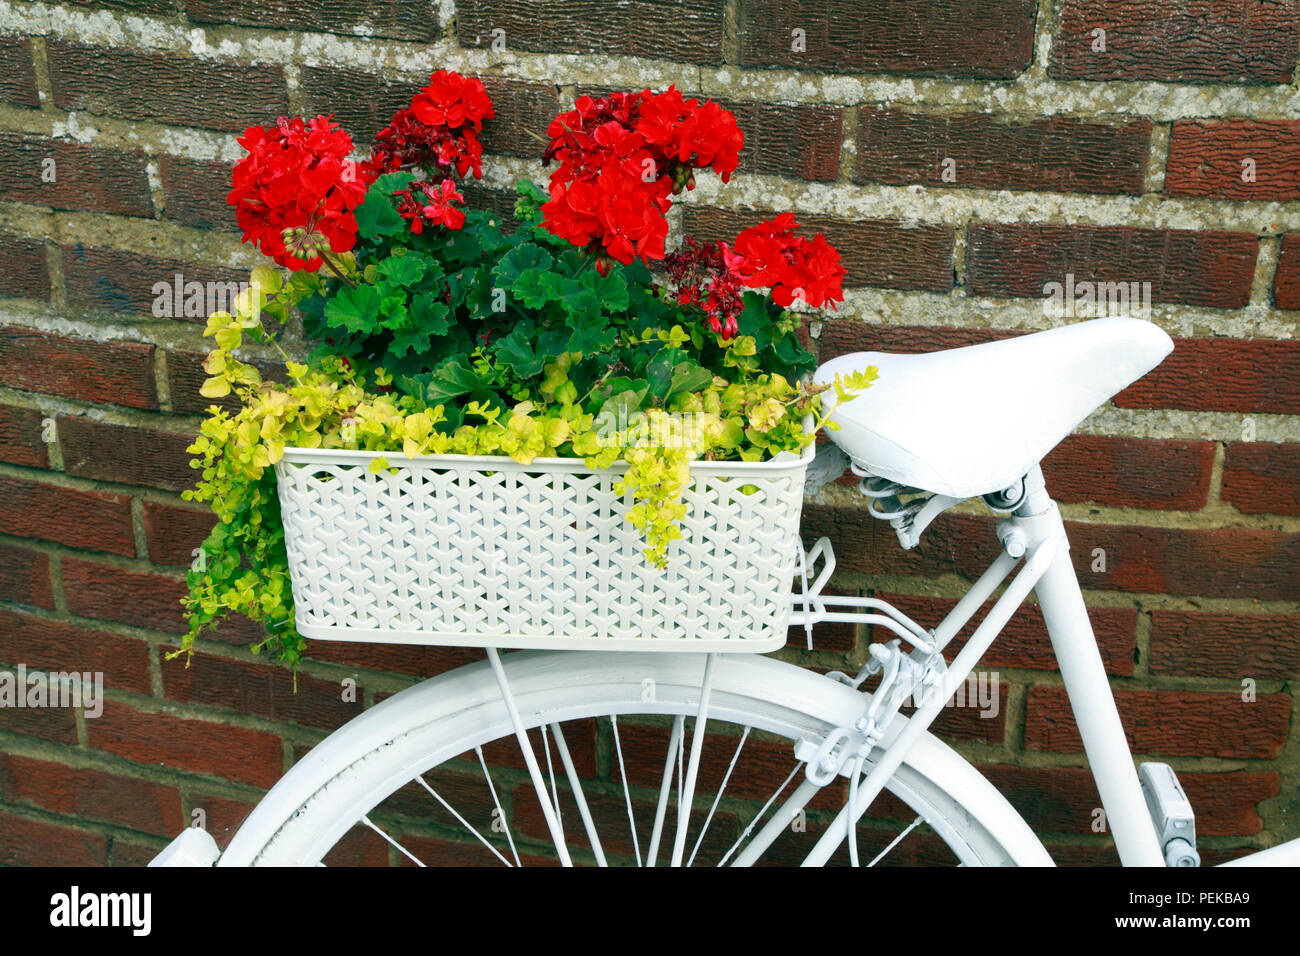 Hunstanton in Bloom, unusual plant container, white painted bicycle, bedding plants - Stock Image